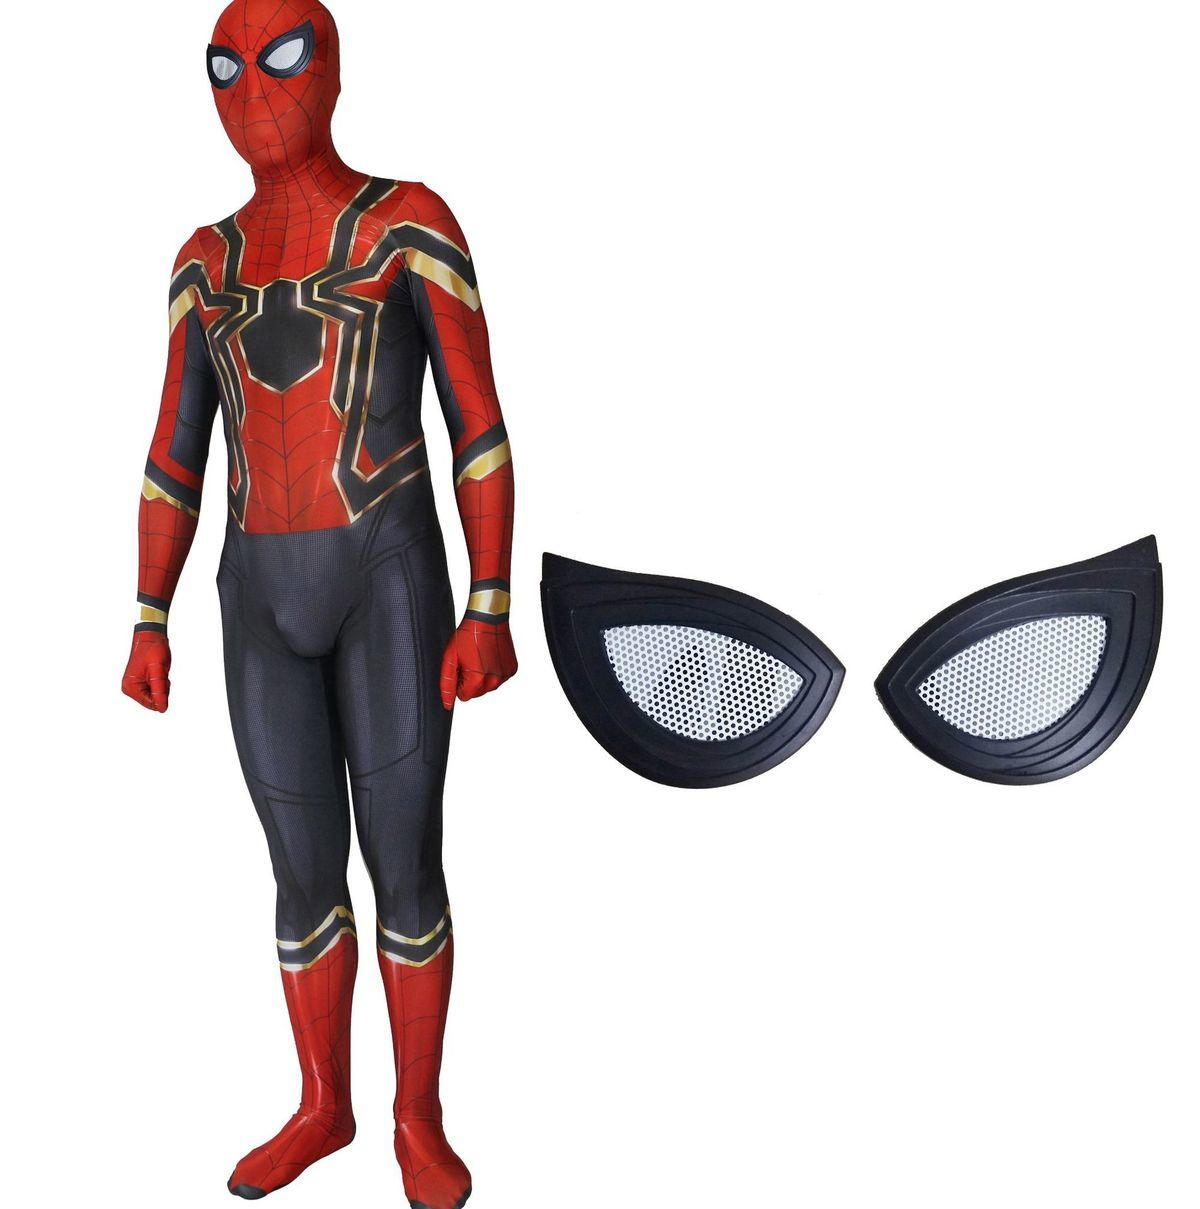 red black Homecoming amazing spiderman iron spider costume adult Cosplay 3D Print Zentai Spider-man Movies Costumes Spidey Suit